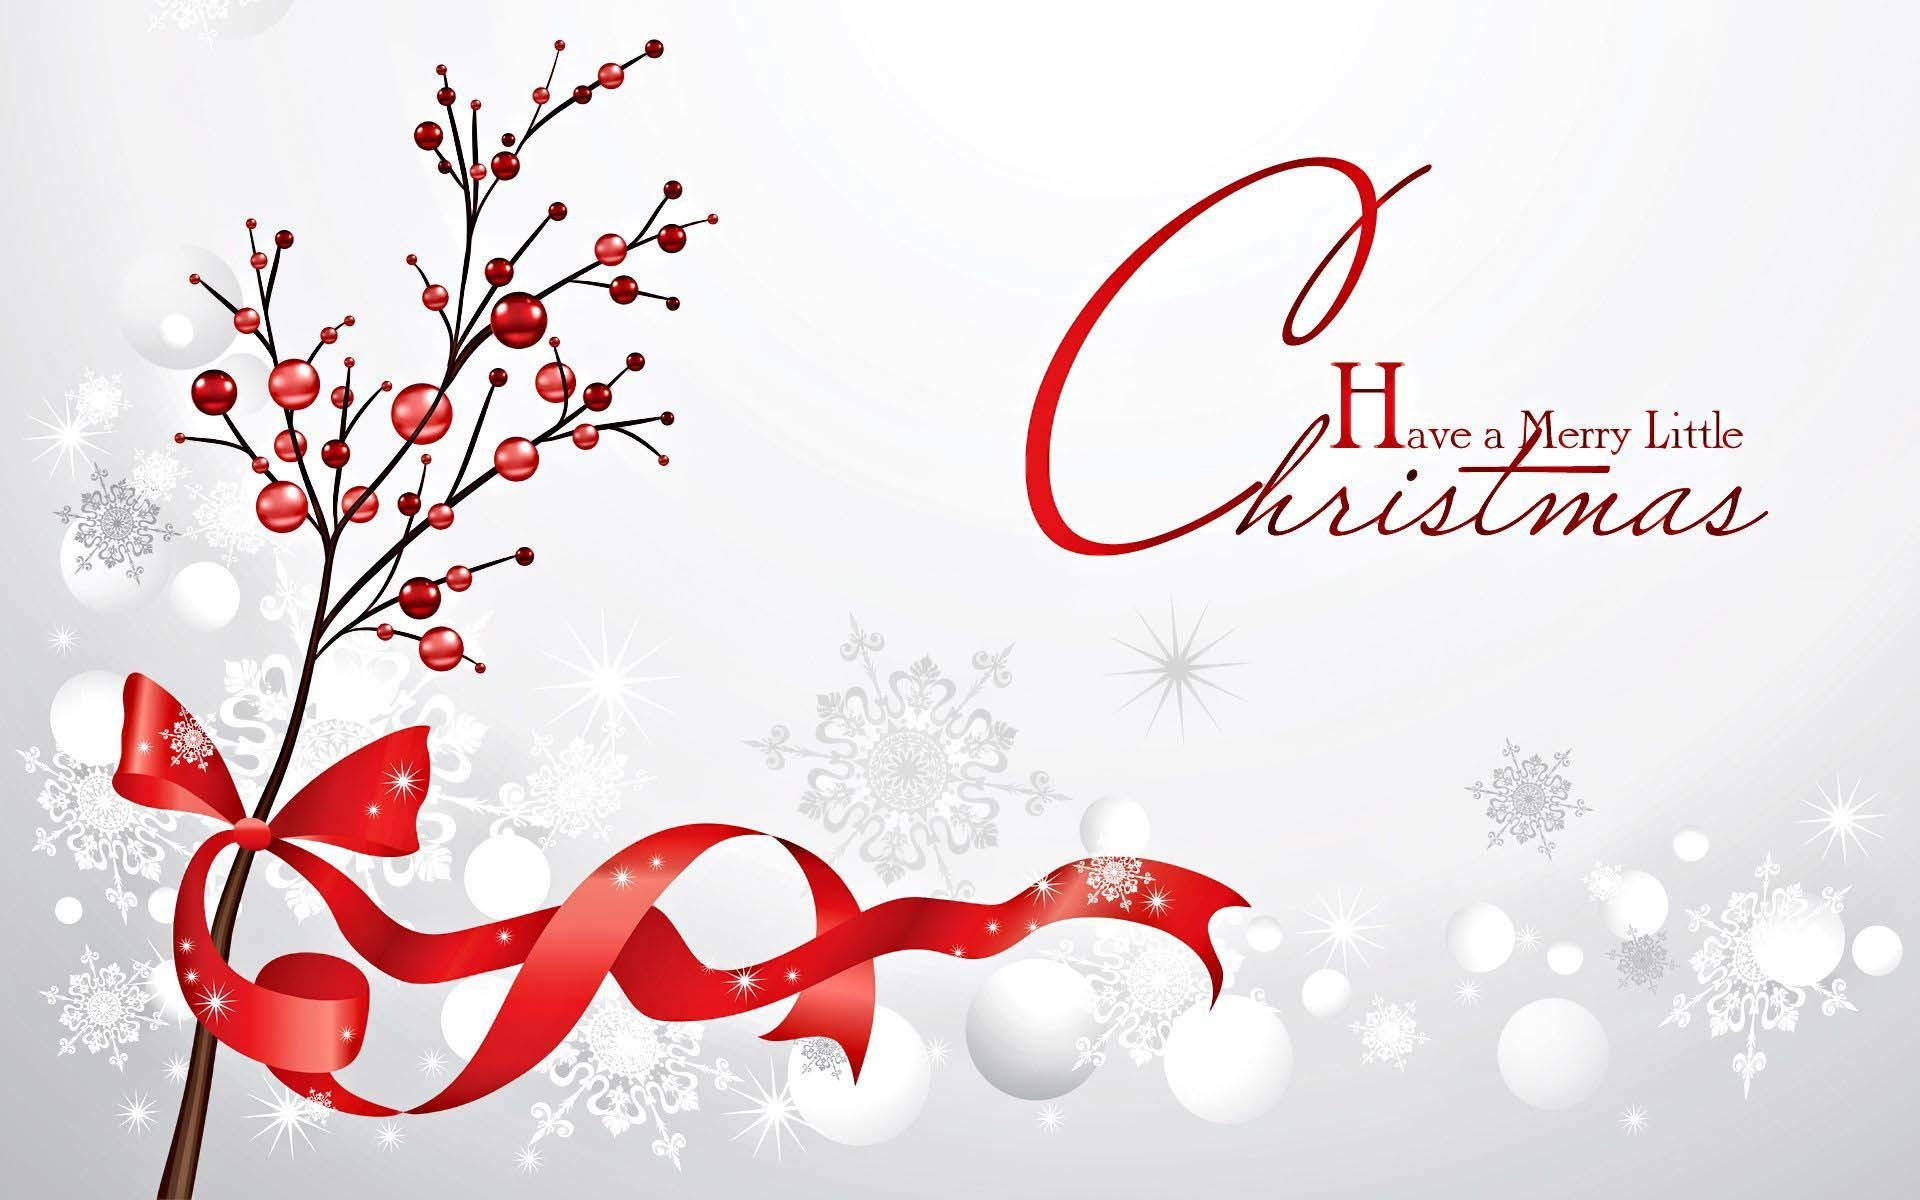 happy merry christmas widescreen hd wallpapers   Free wallpapers